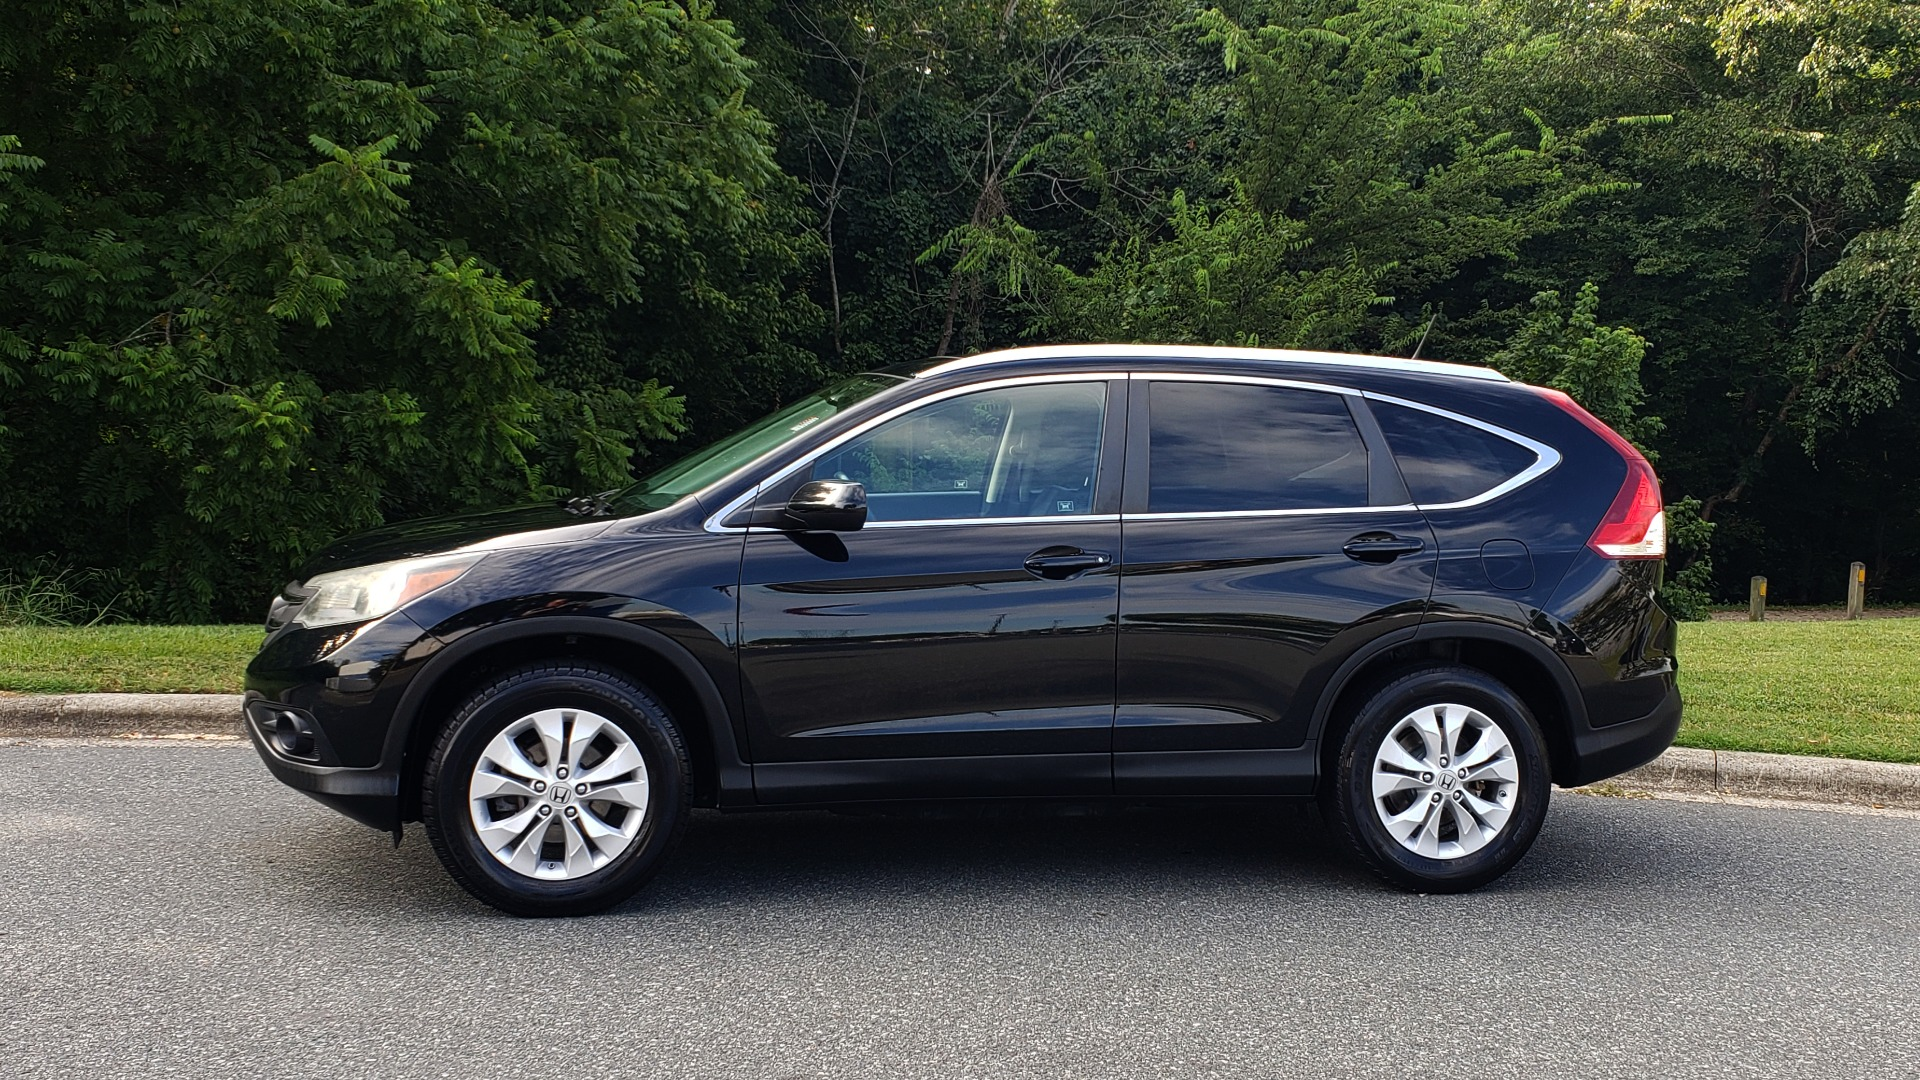 Used 2012 Honda CR-V EX-L / AWD / 5DR / SUNROOF / HEATED SEATS / REARVIEW for sale Sold at Formula Imports in Charlotte NC 28227 2